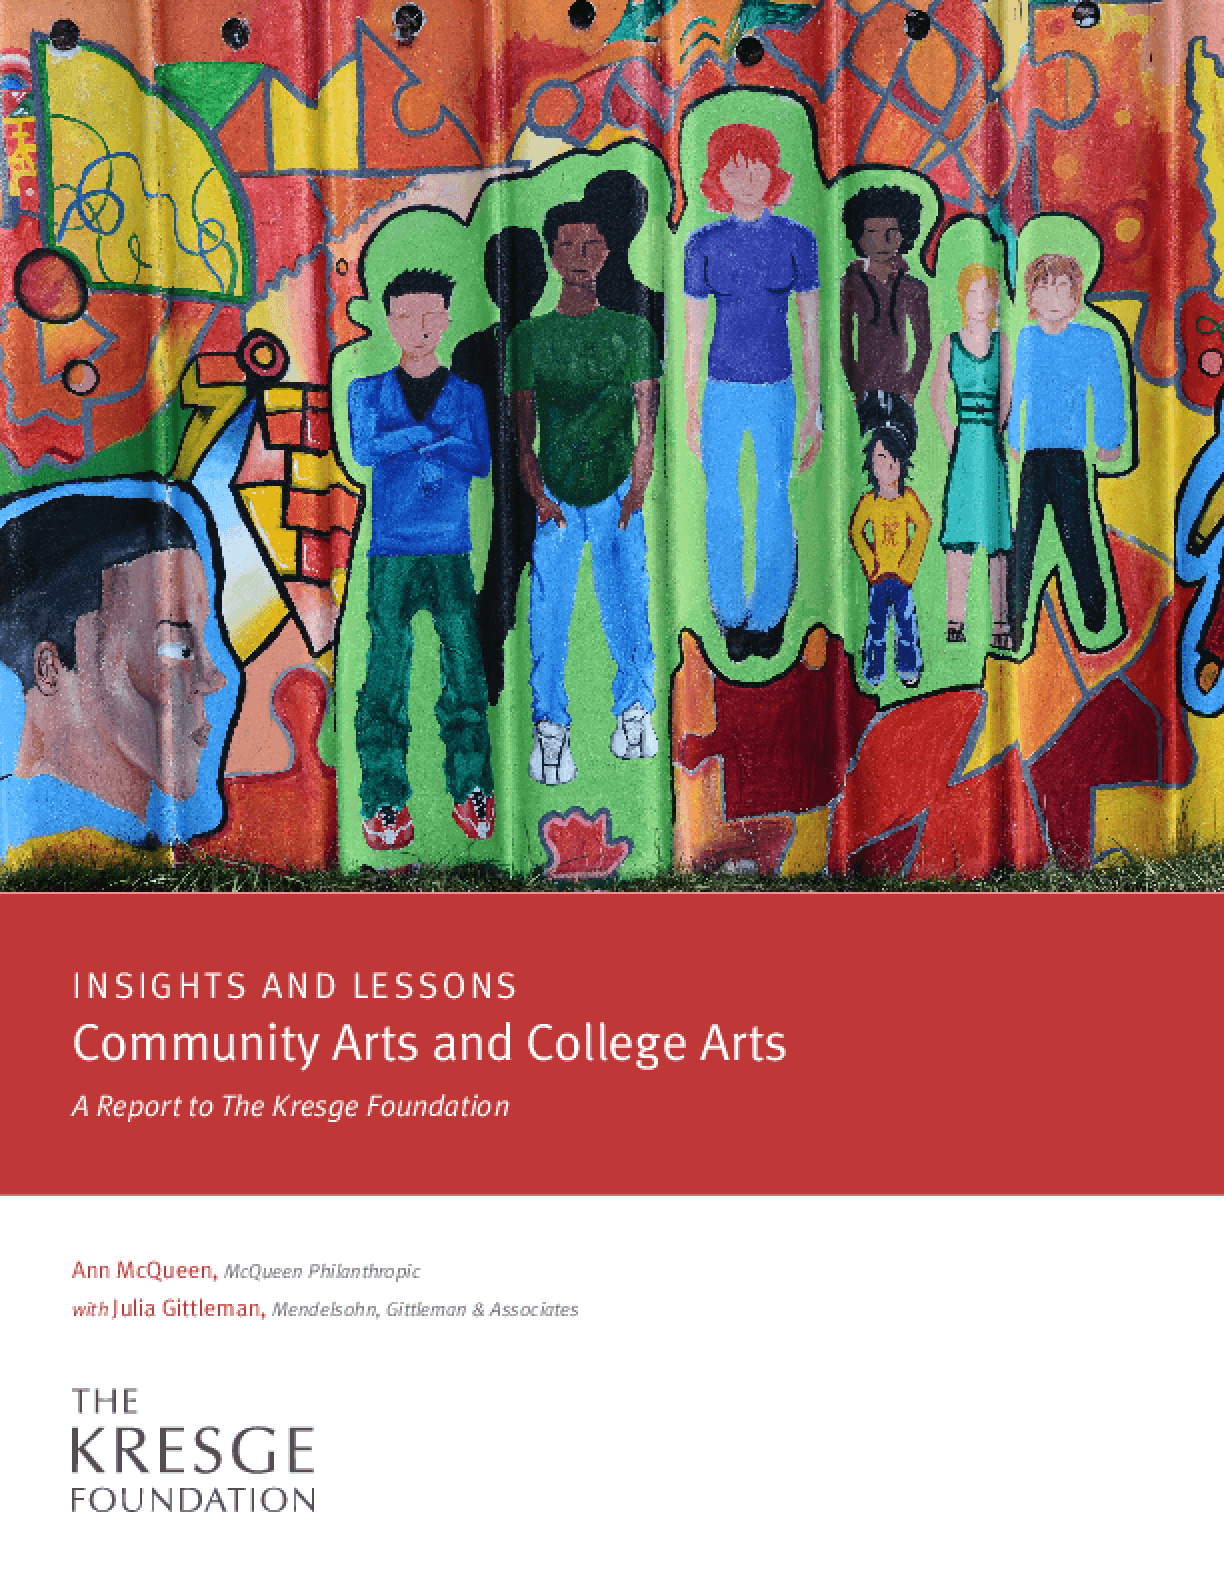 Insights and Lessons: Community Arts and College Arts - A Report to The Kresge Foundation